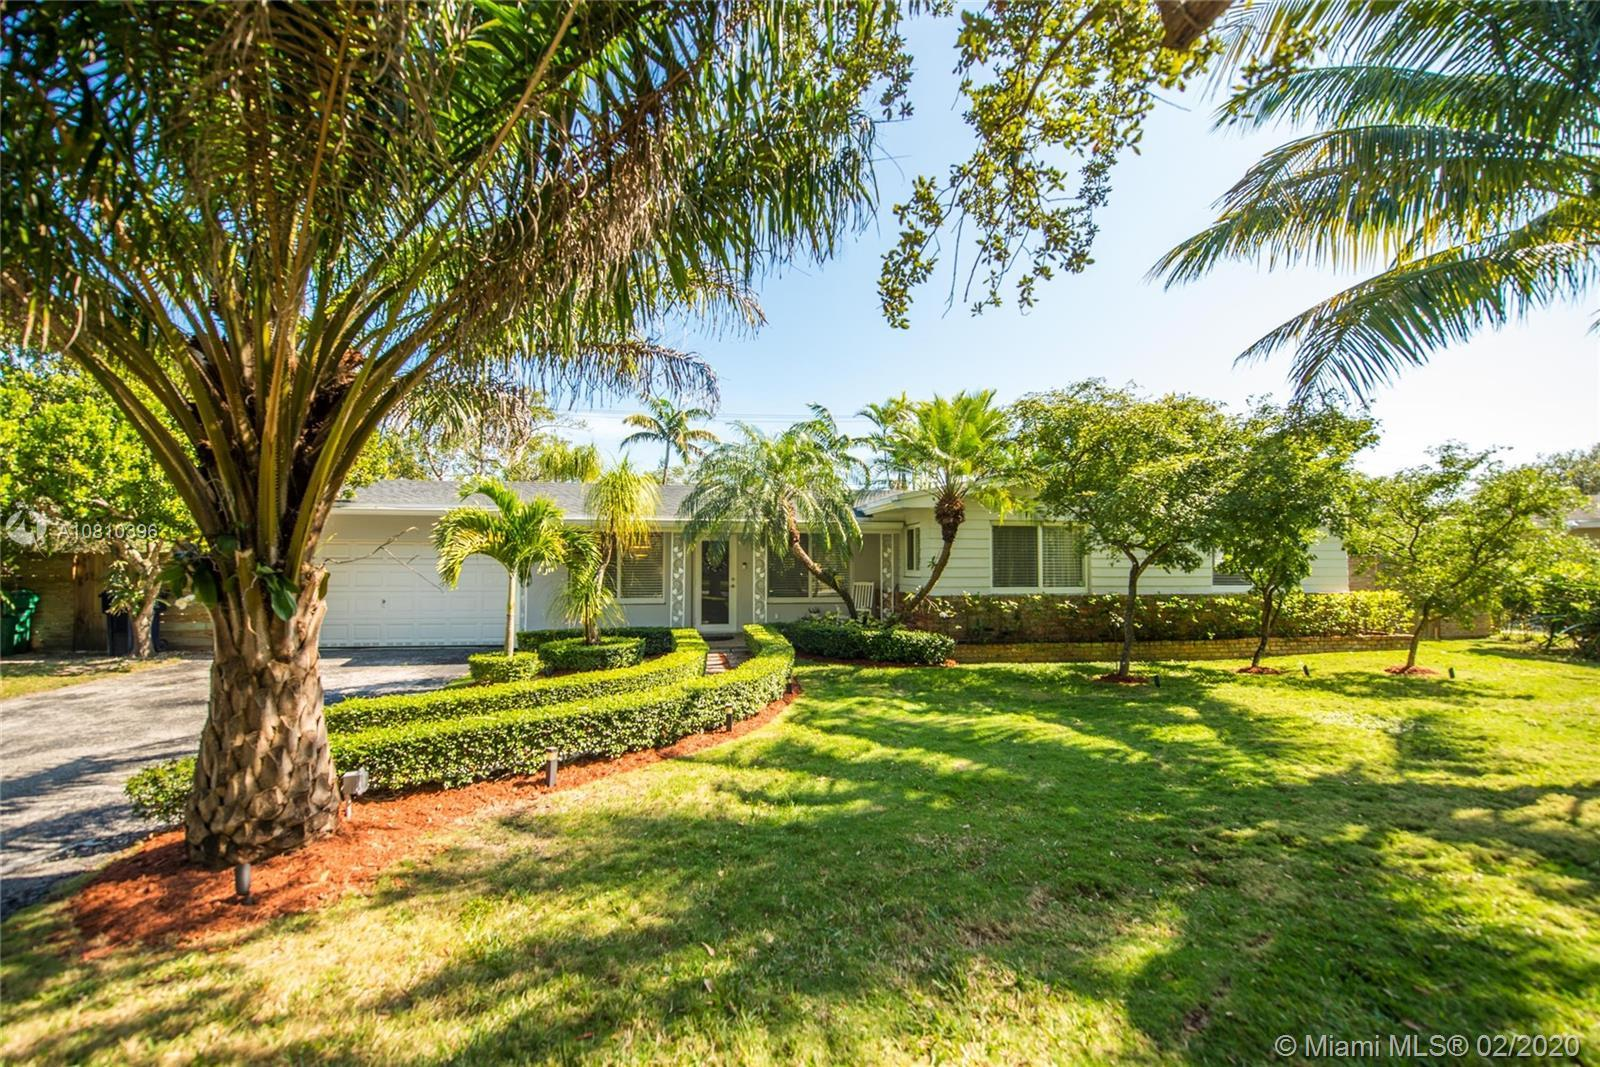 Welcome Home! Your very own tropical oasis in Pinecrest. This lovely 3 BR/2 BA has so much to offer.